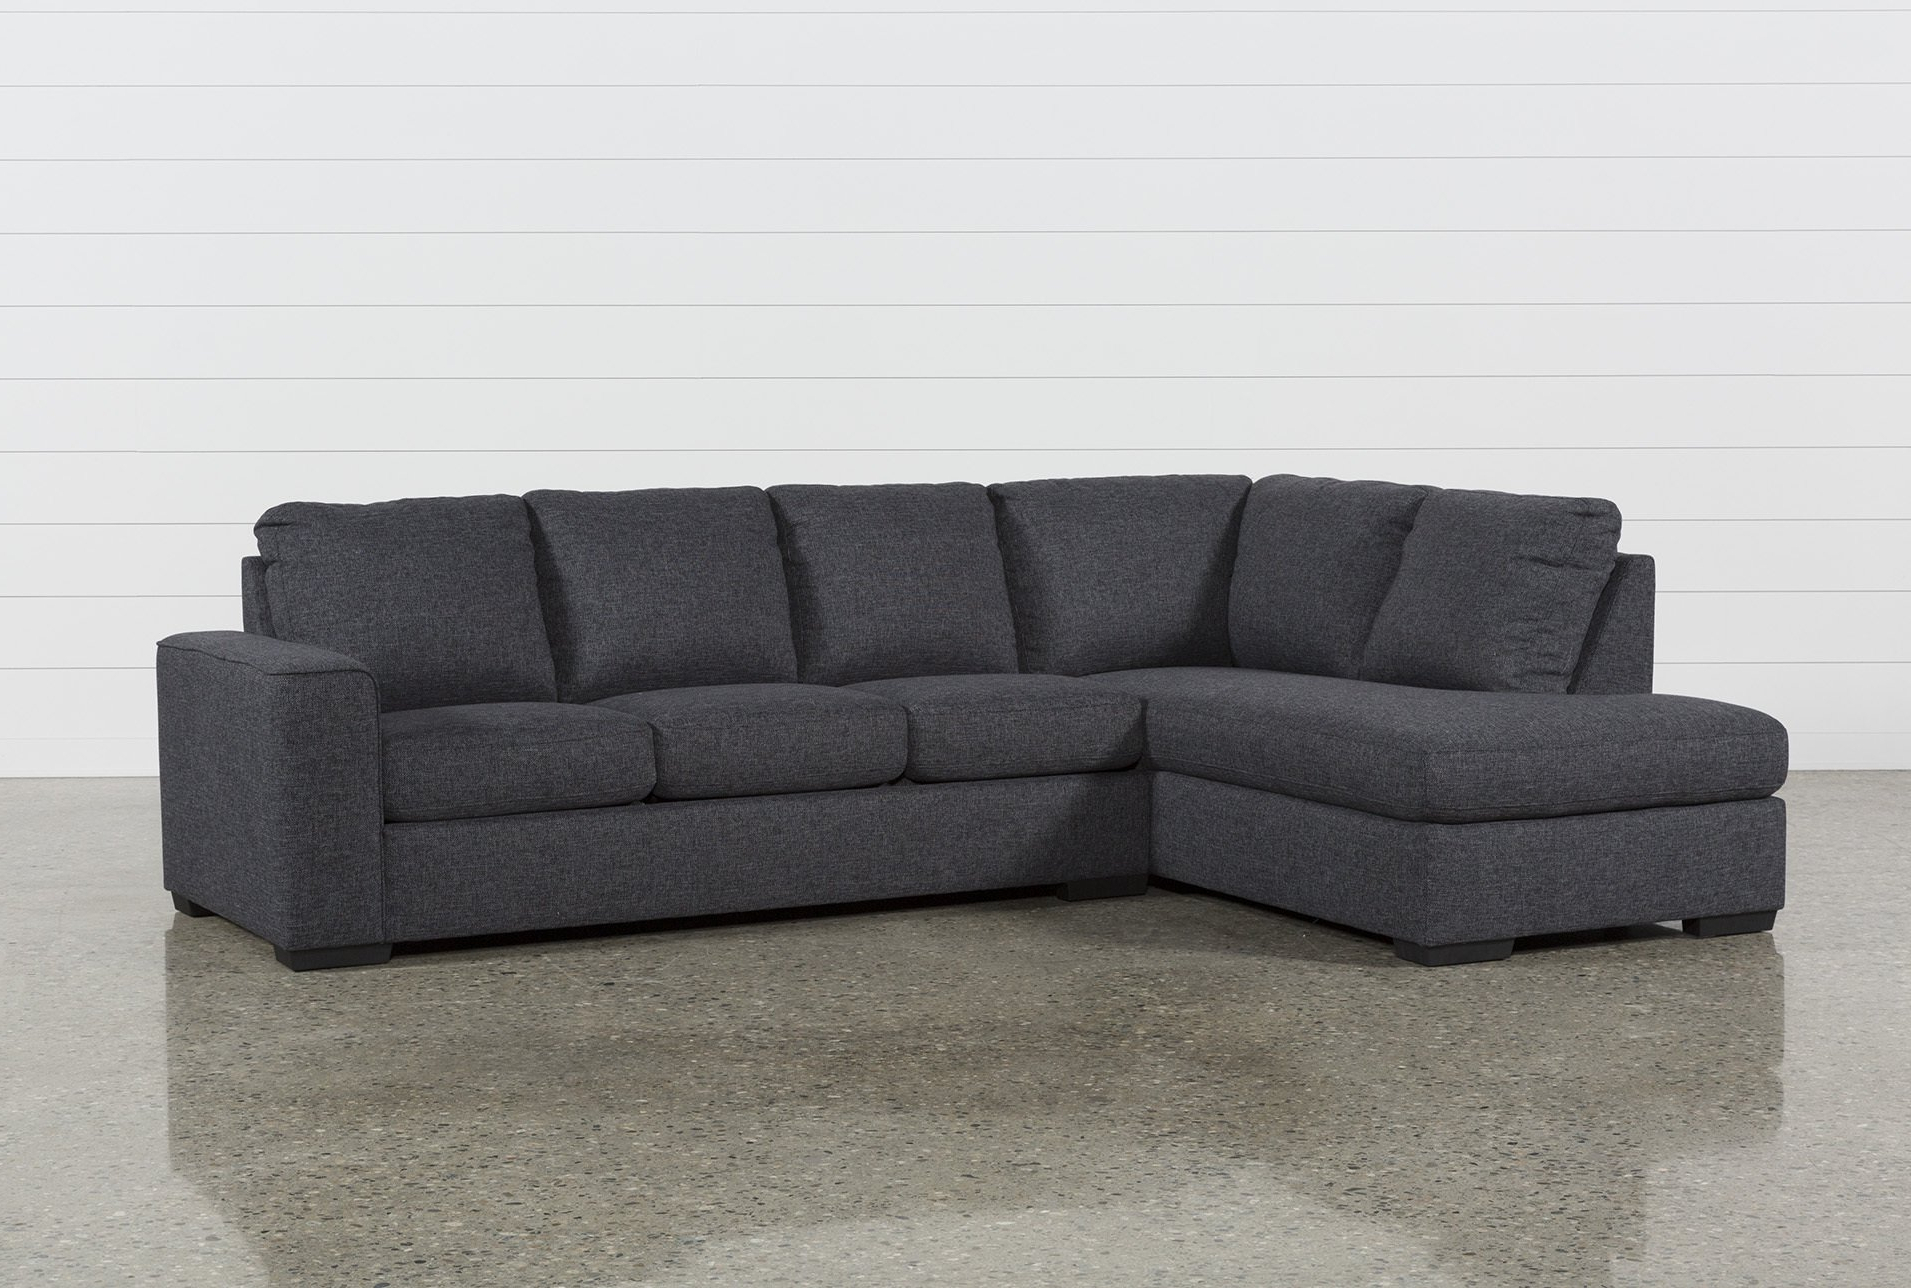 Malbry Point 3 Piece Sectionals With Raf Chaise In Newest Lucy Dark Grey 2 Piece Sectional W/laf Chaise (View 4 of 20)